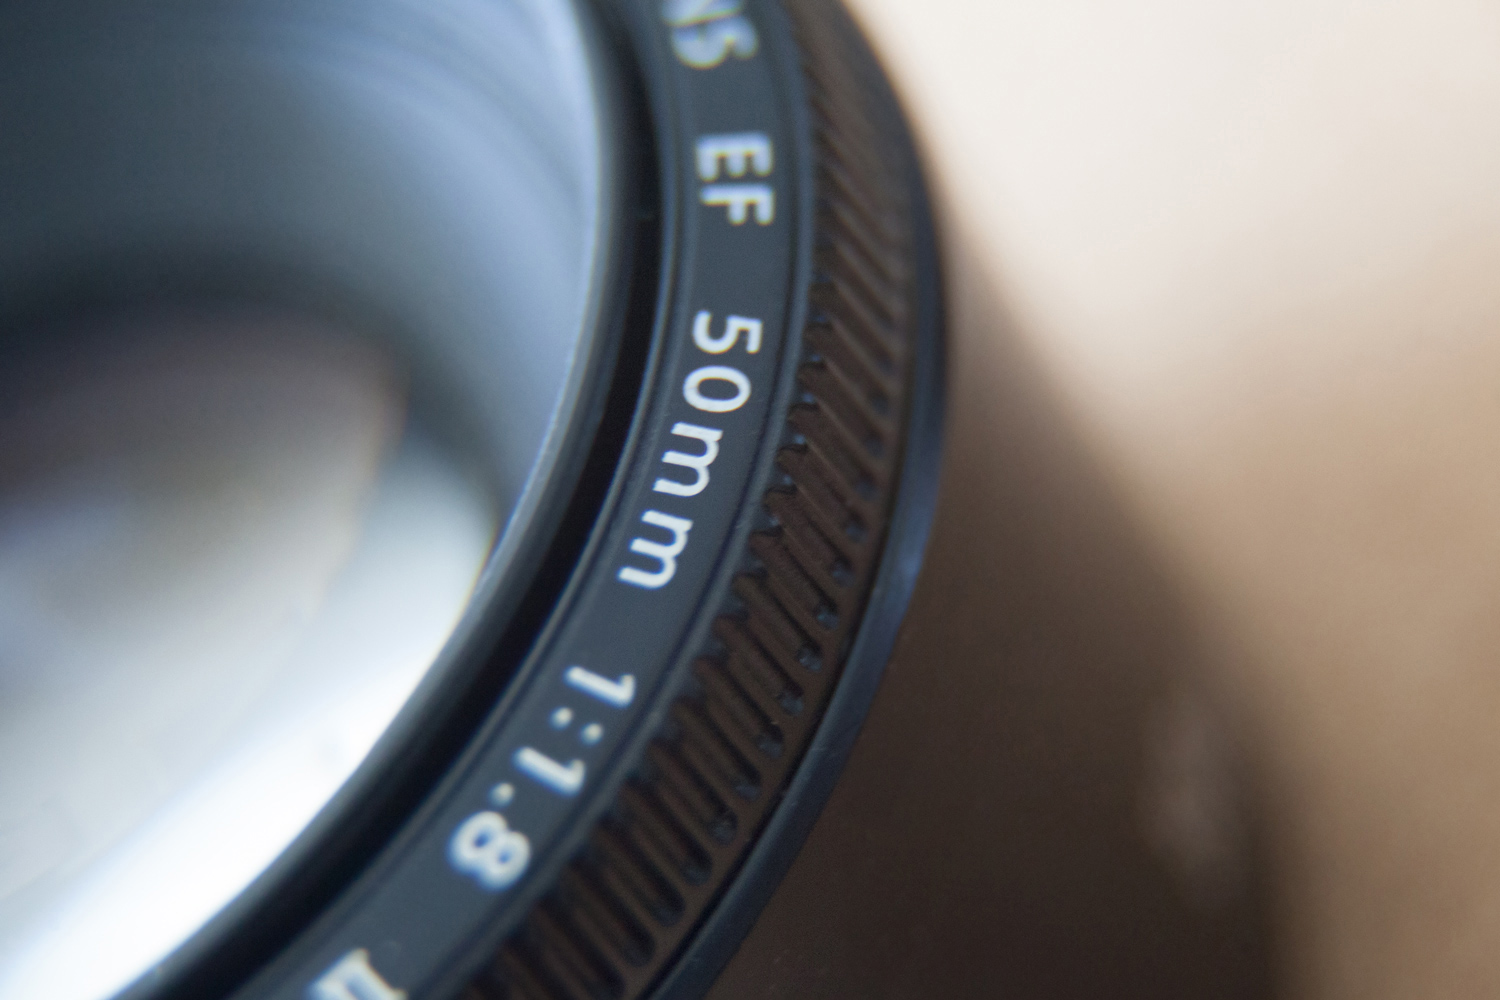 Going Back to Basics - My Week With a Canon EF 50mm f/1.8 II Lens